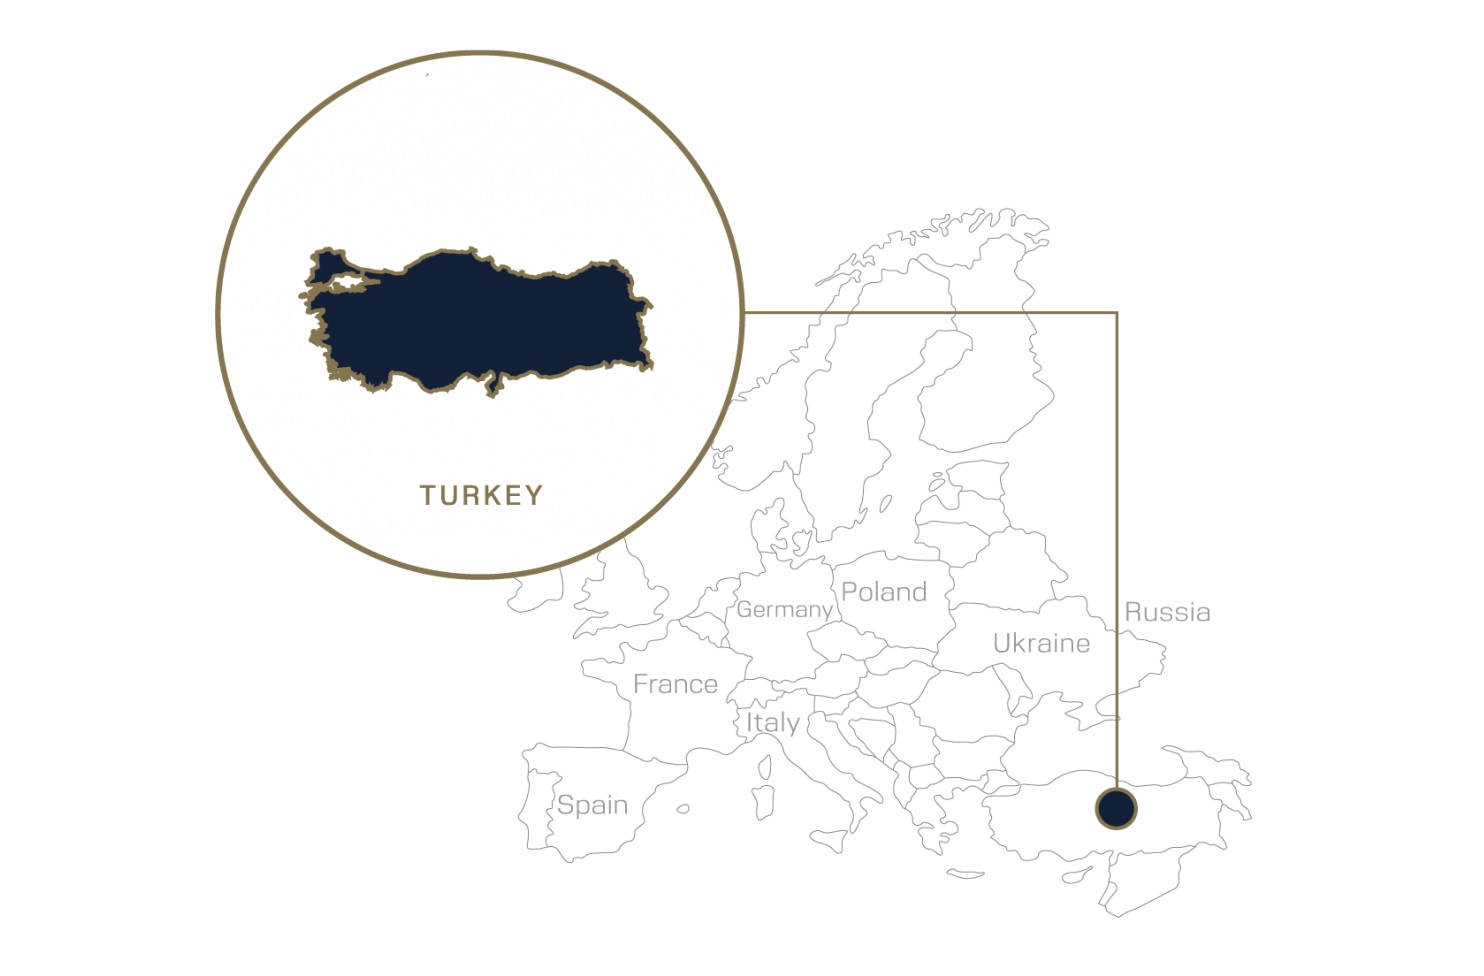 Turkey General Information